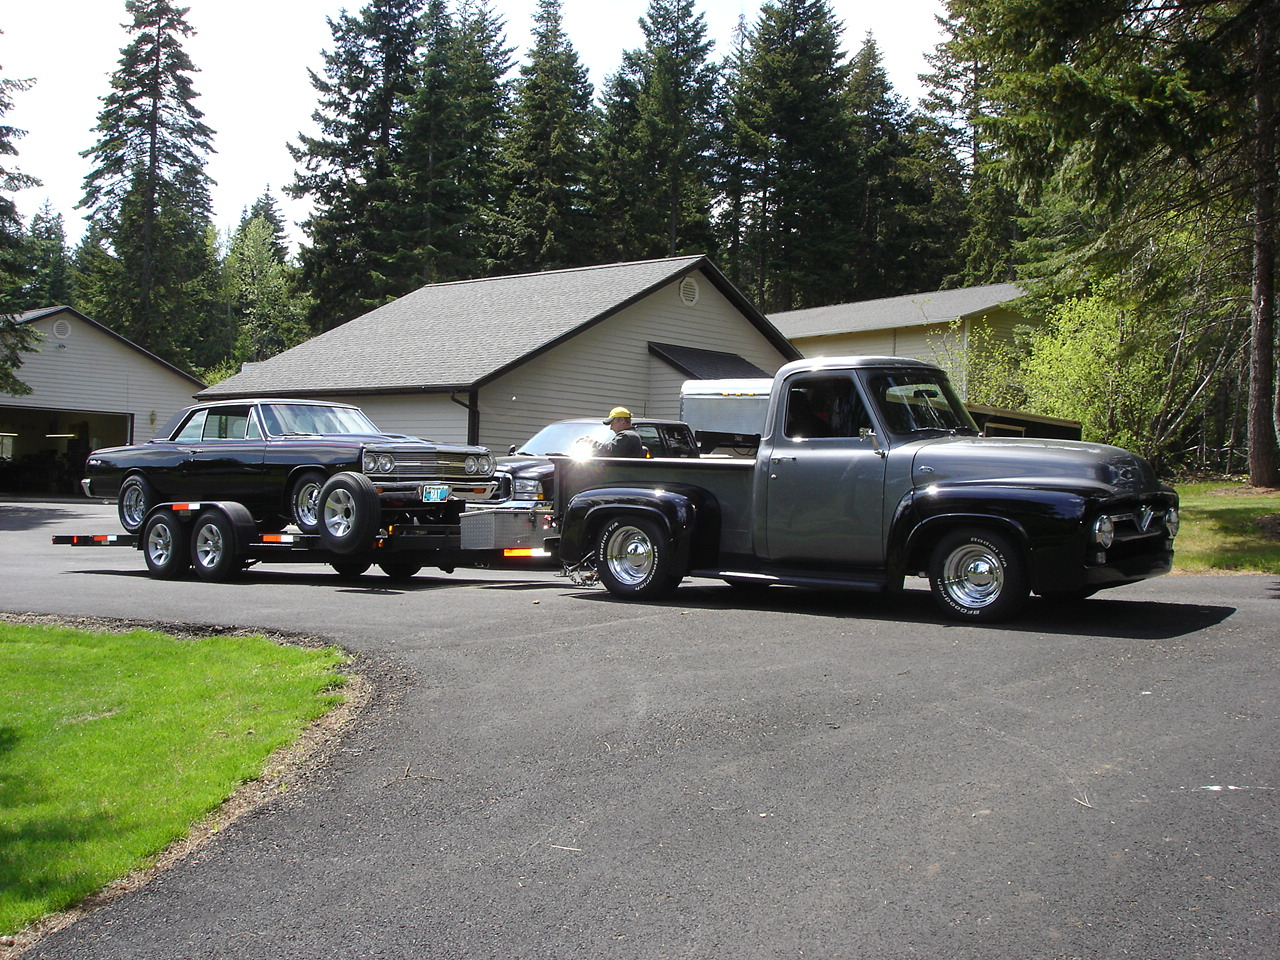 55 Ford Pickup 1955 F100 Tubbed The License Plate On This Reads 4 Towin We Use Truck To Take Other Hot Rods And A Highly Customized Harley Davidson Motorcycle Outdoor